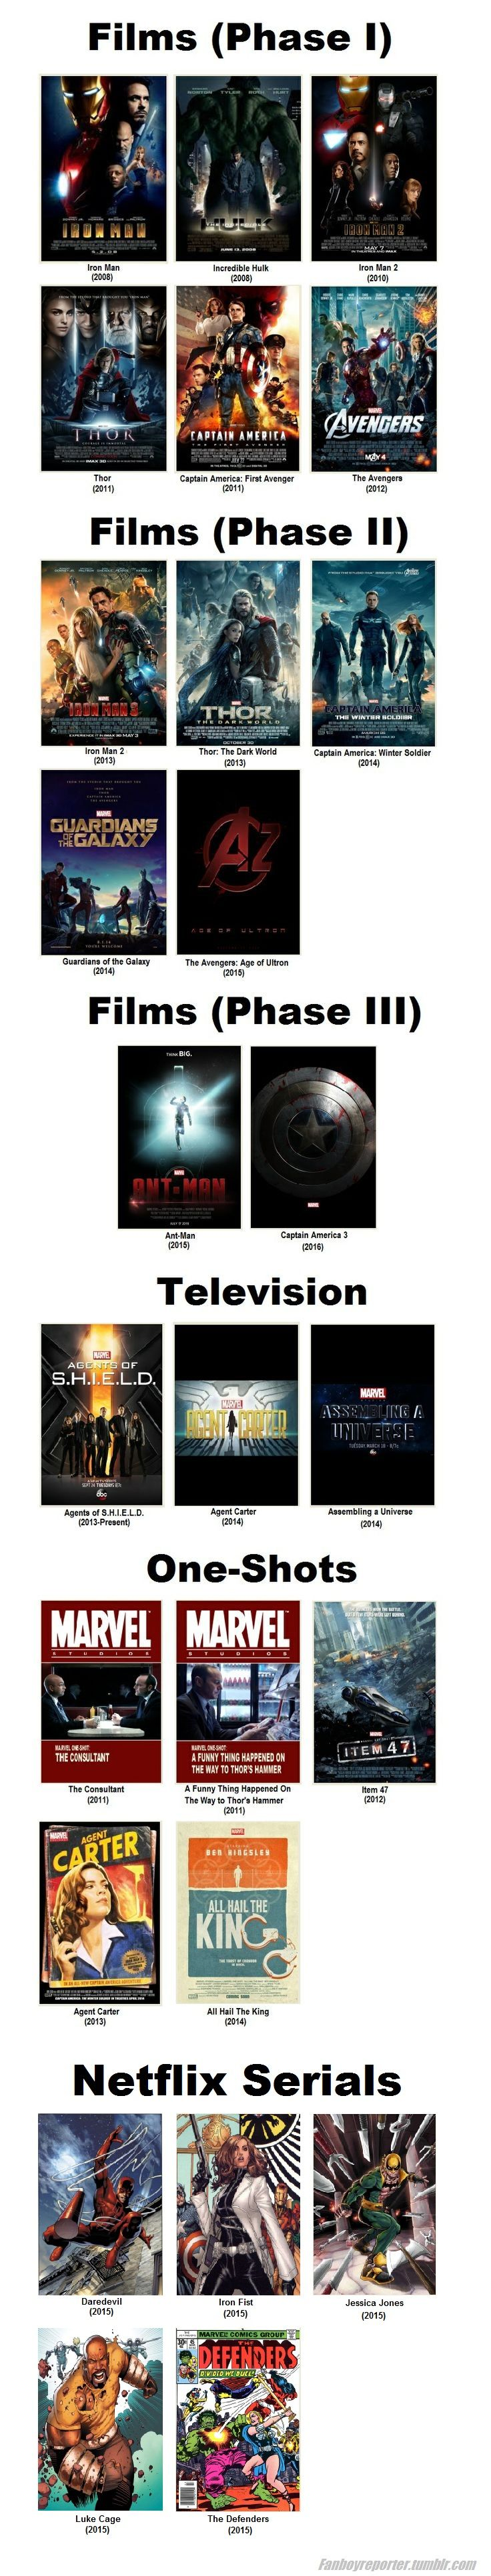 The Marvel Cinematic Universe currently consists of 13 movies, two television programs, five short films, a TV special, and five upcoming Netflix Original serials.